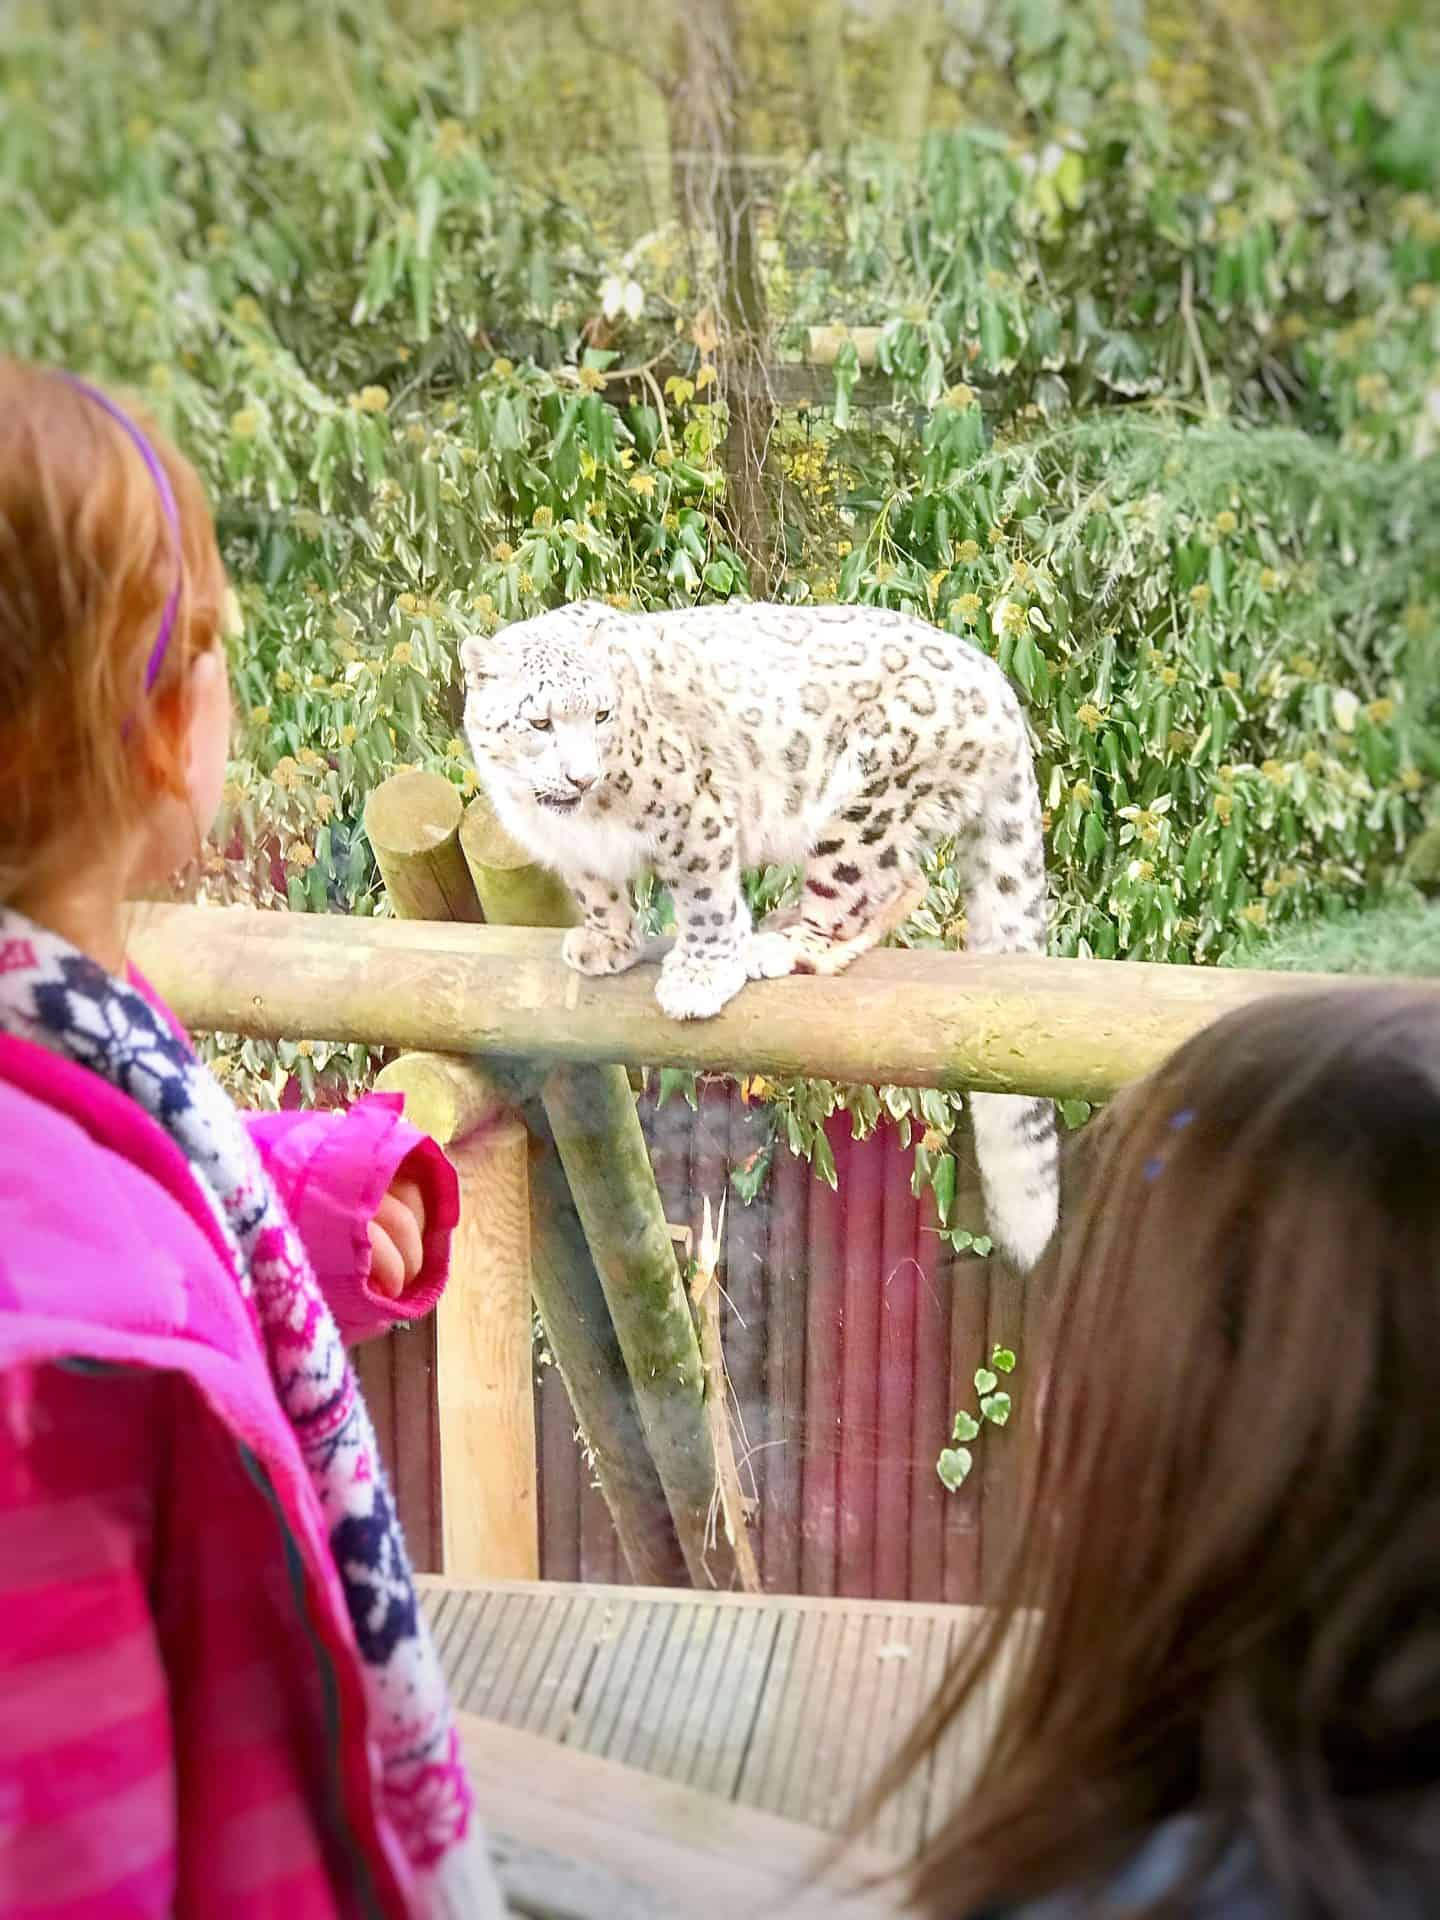 Face to face with a snow leopard